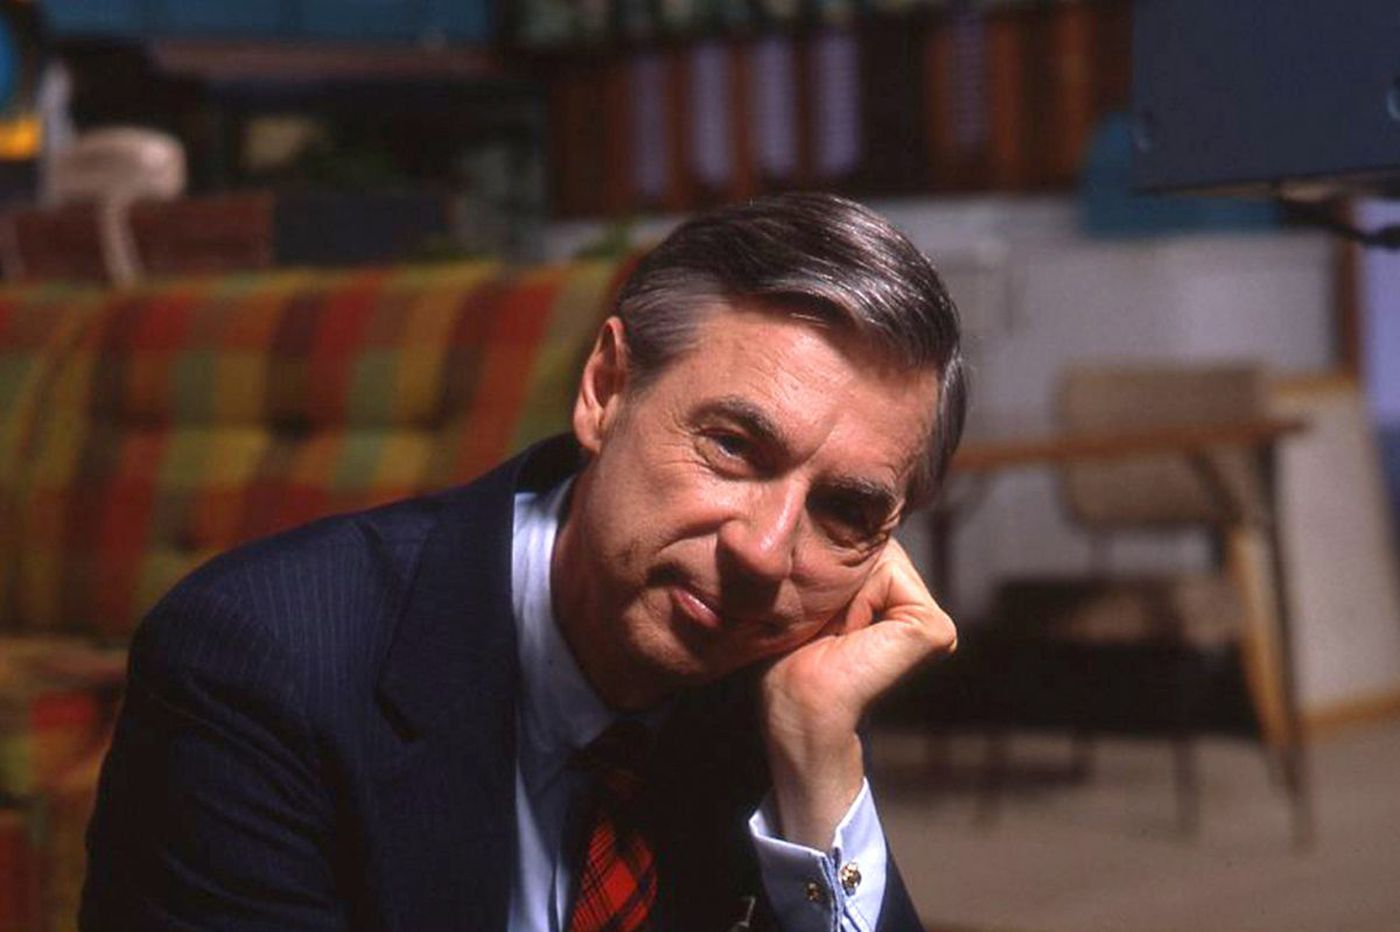 See the Mr. Rogers and Ruth Bader Ginsburg docs early at the Philadelphia Film Society's SpringFest